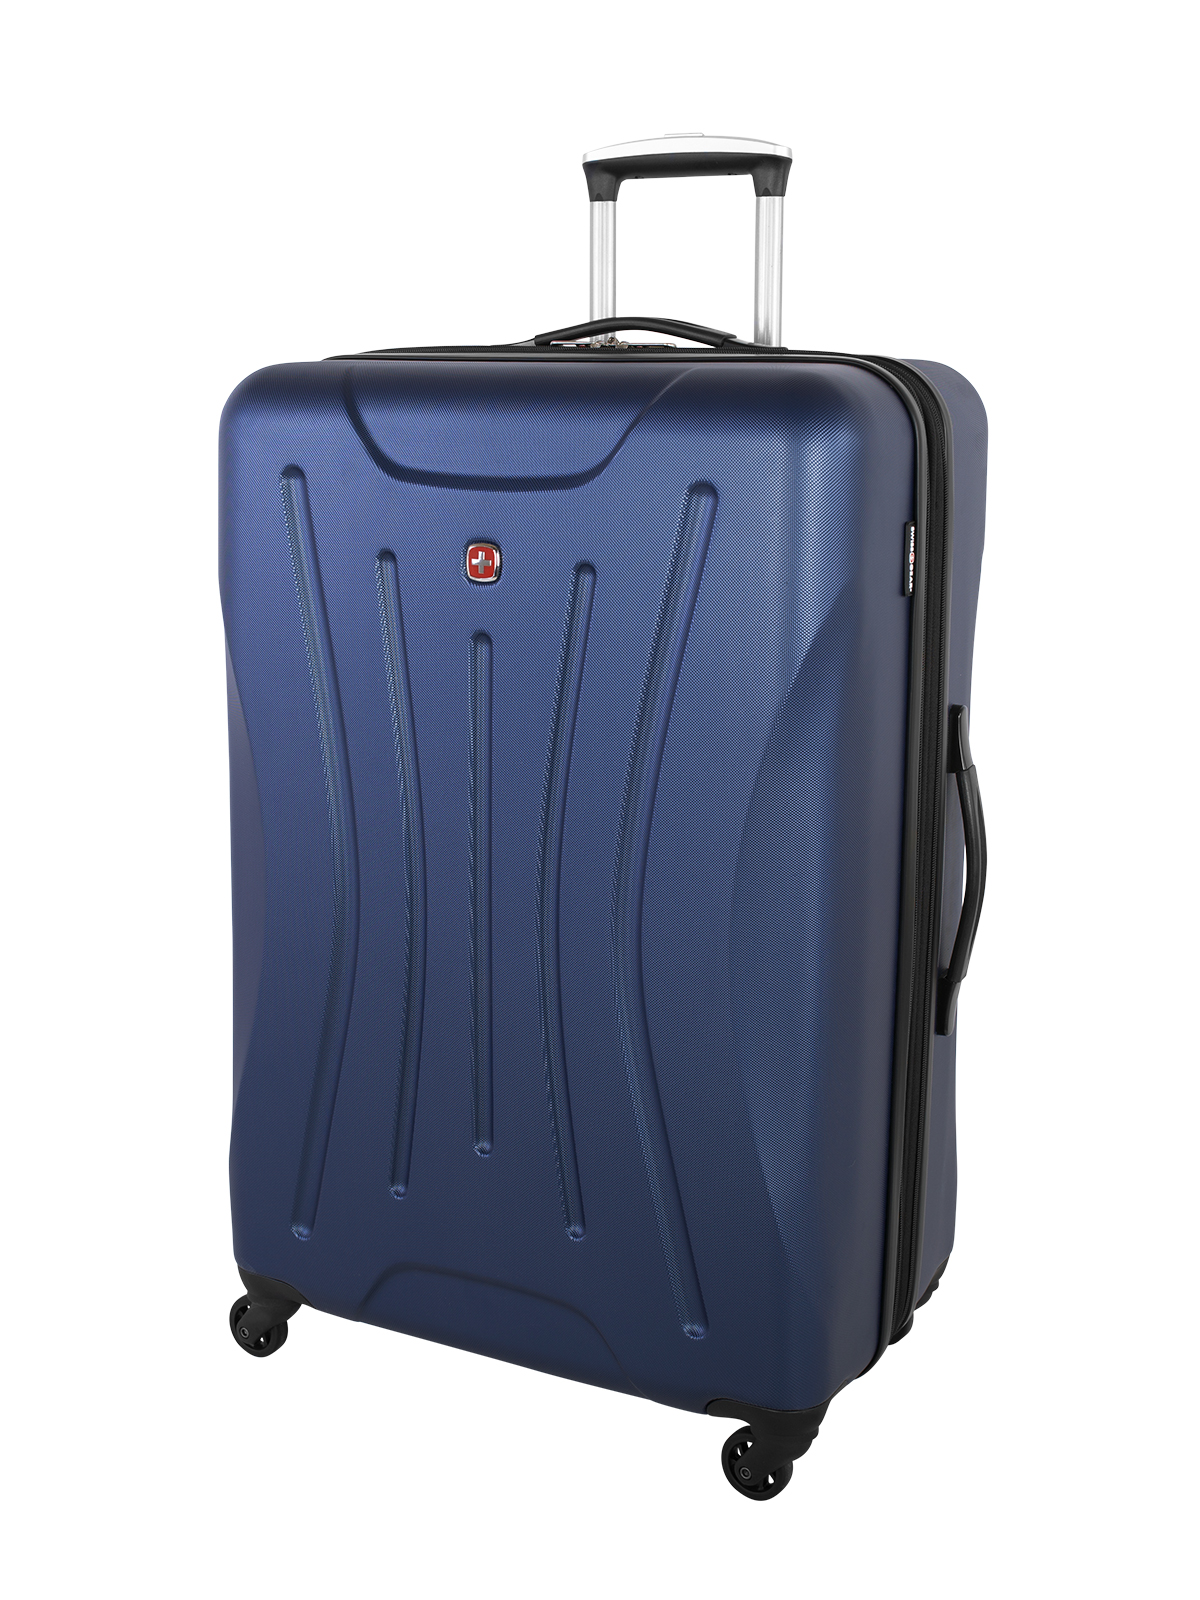 swiss gear fiesta collection 28 upright expandable luggage holiday